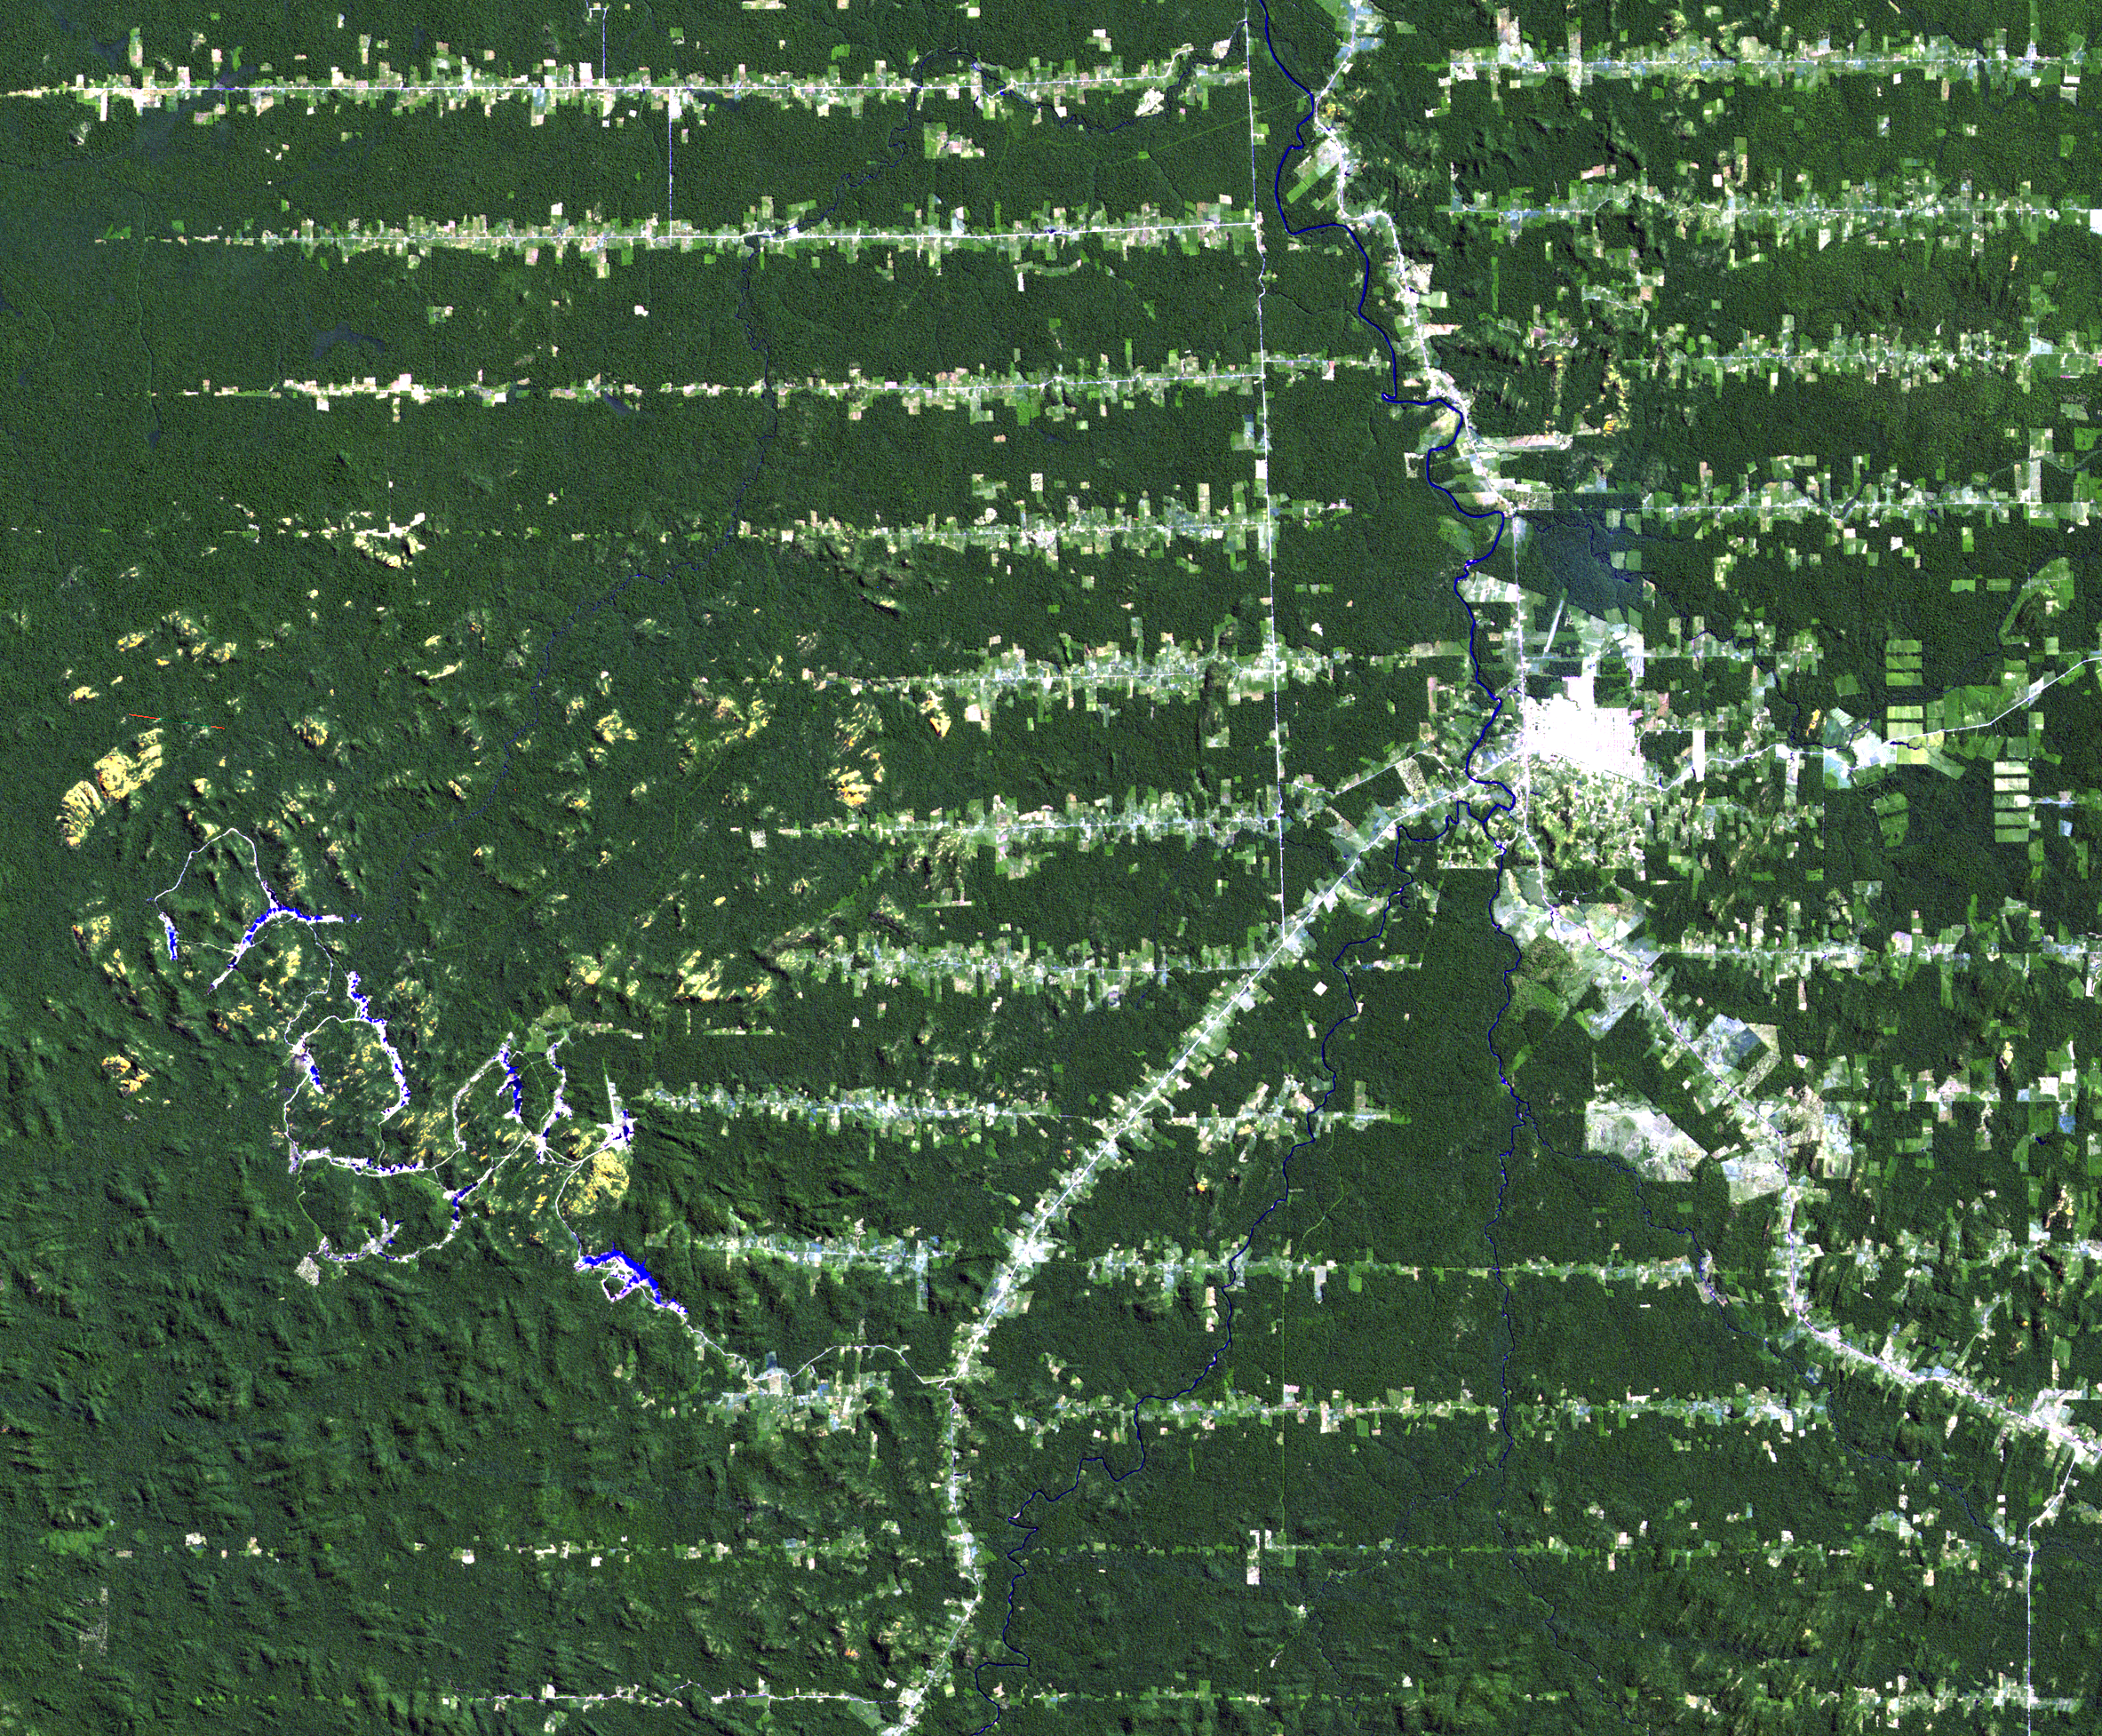 June 24, 1984, Landsat 5 (path/row 232/67) — Ariquemes, Brazil